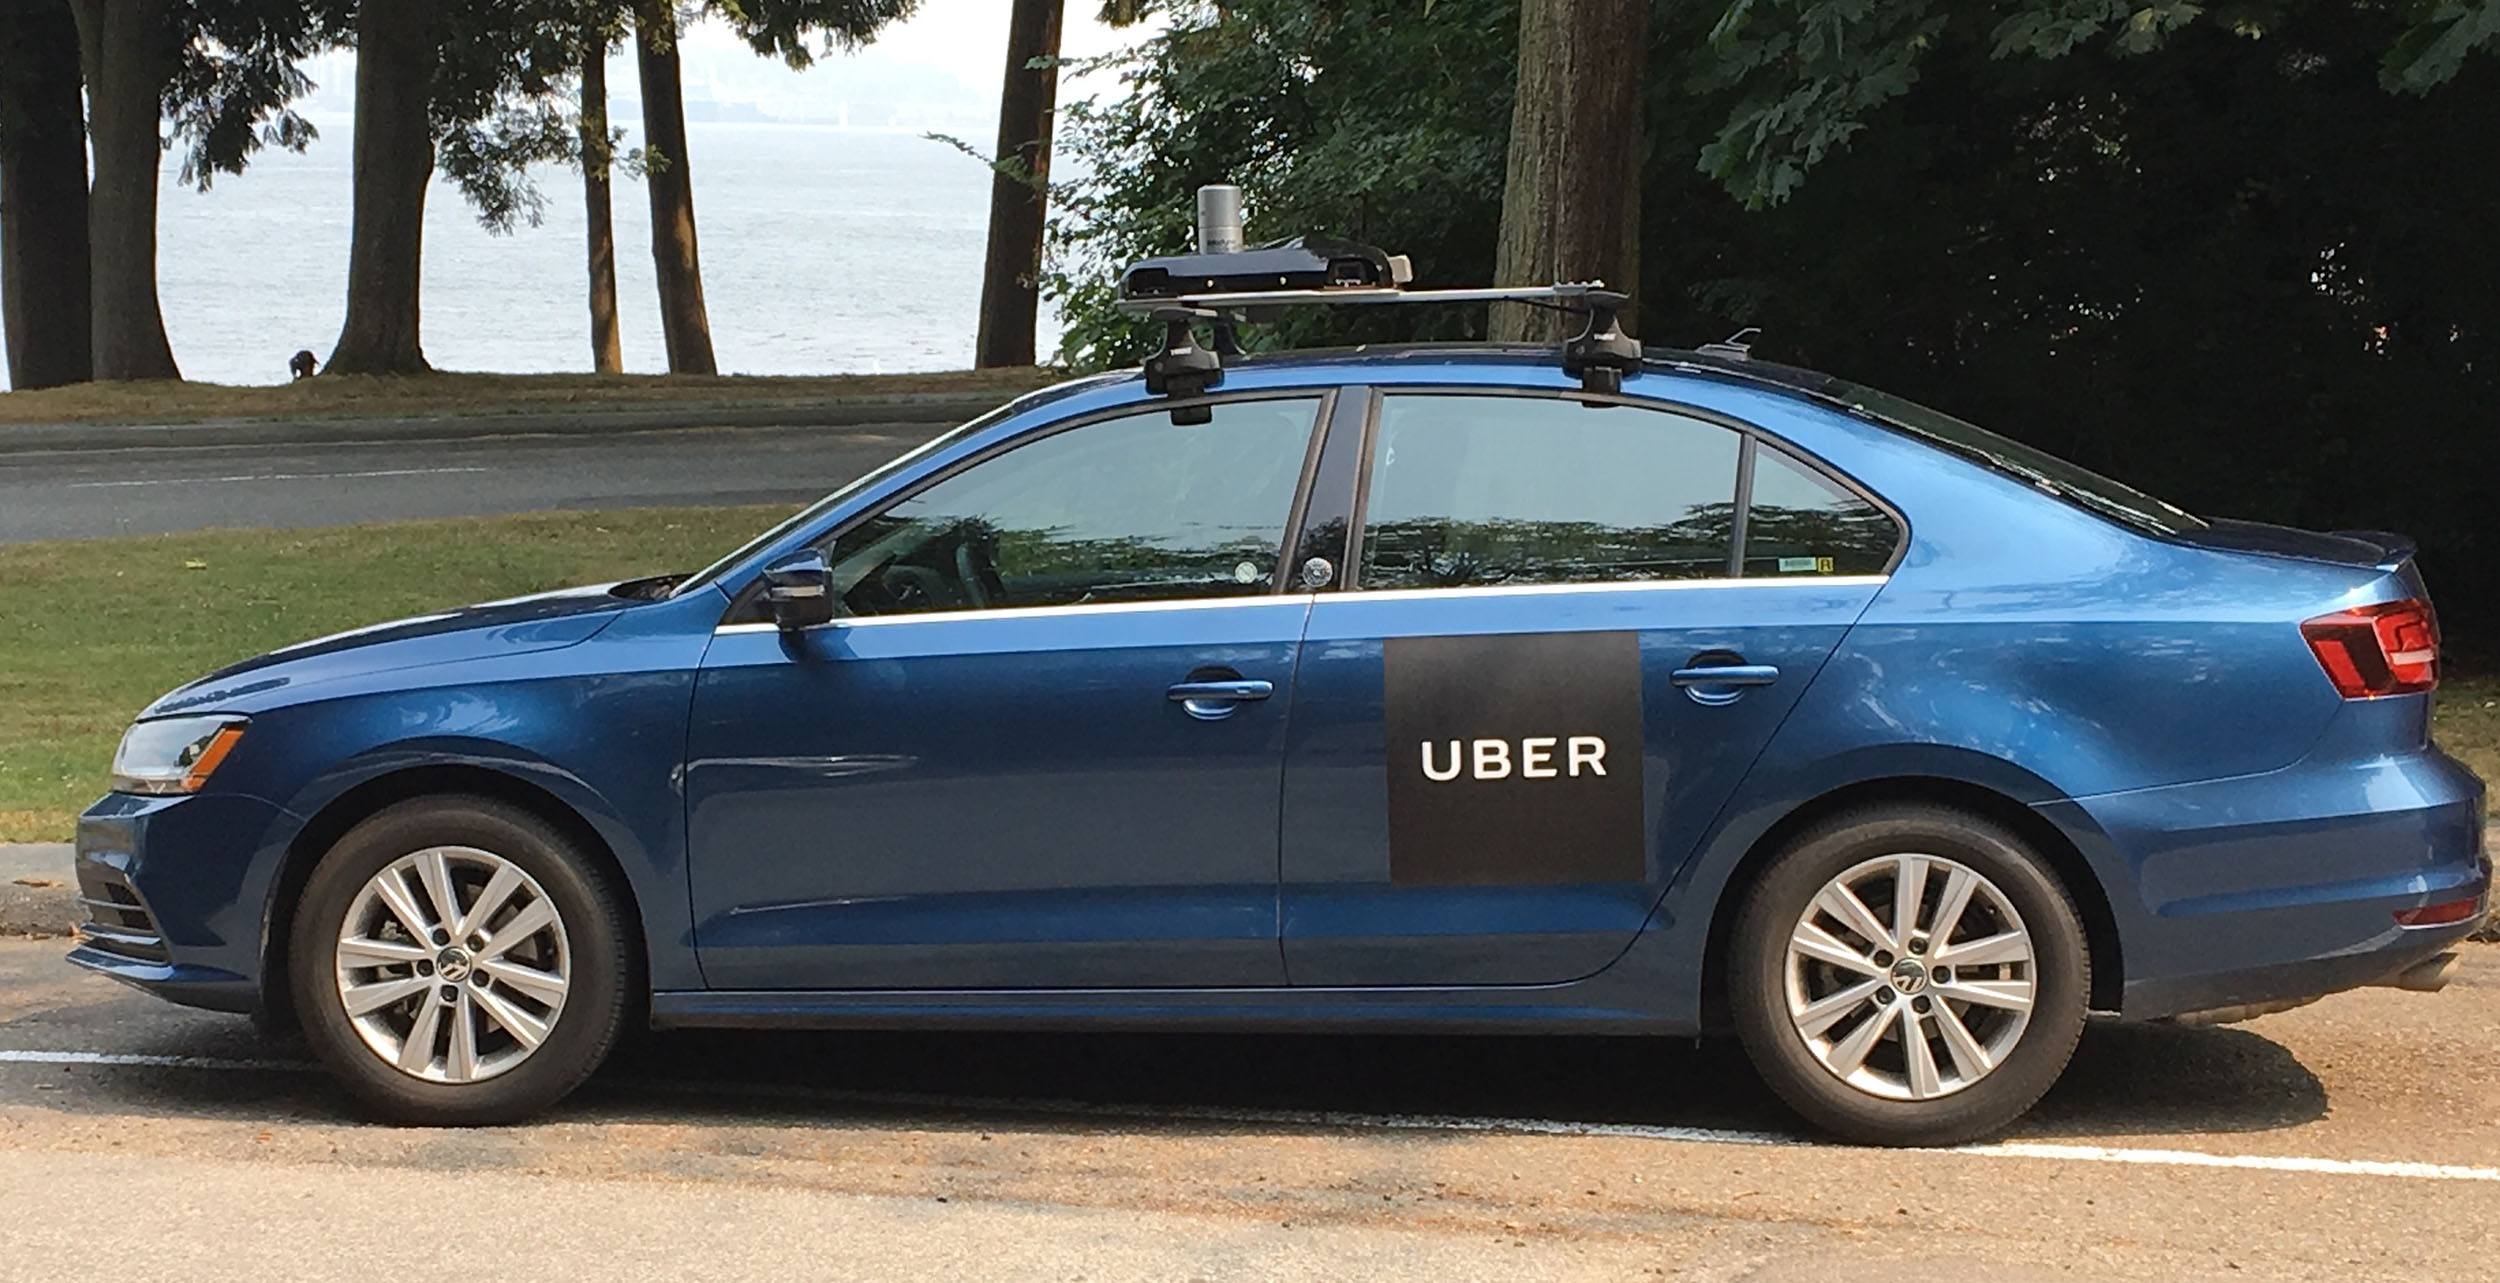 One of ubers enhanced mapping cars in stanley park uber